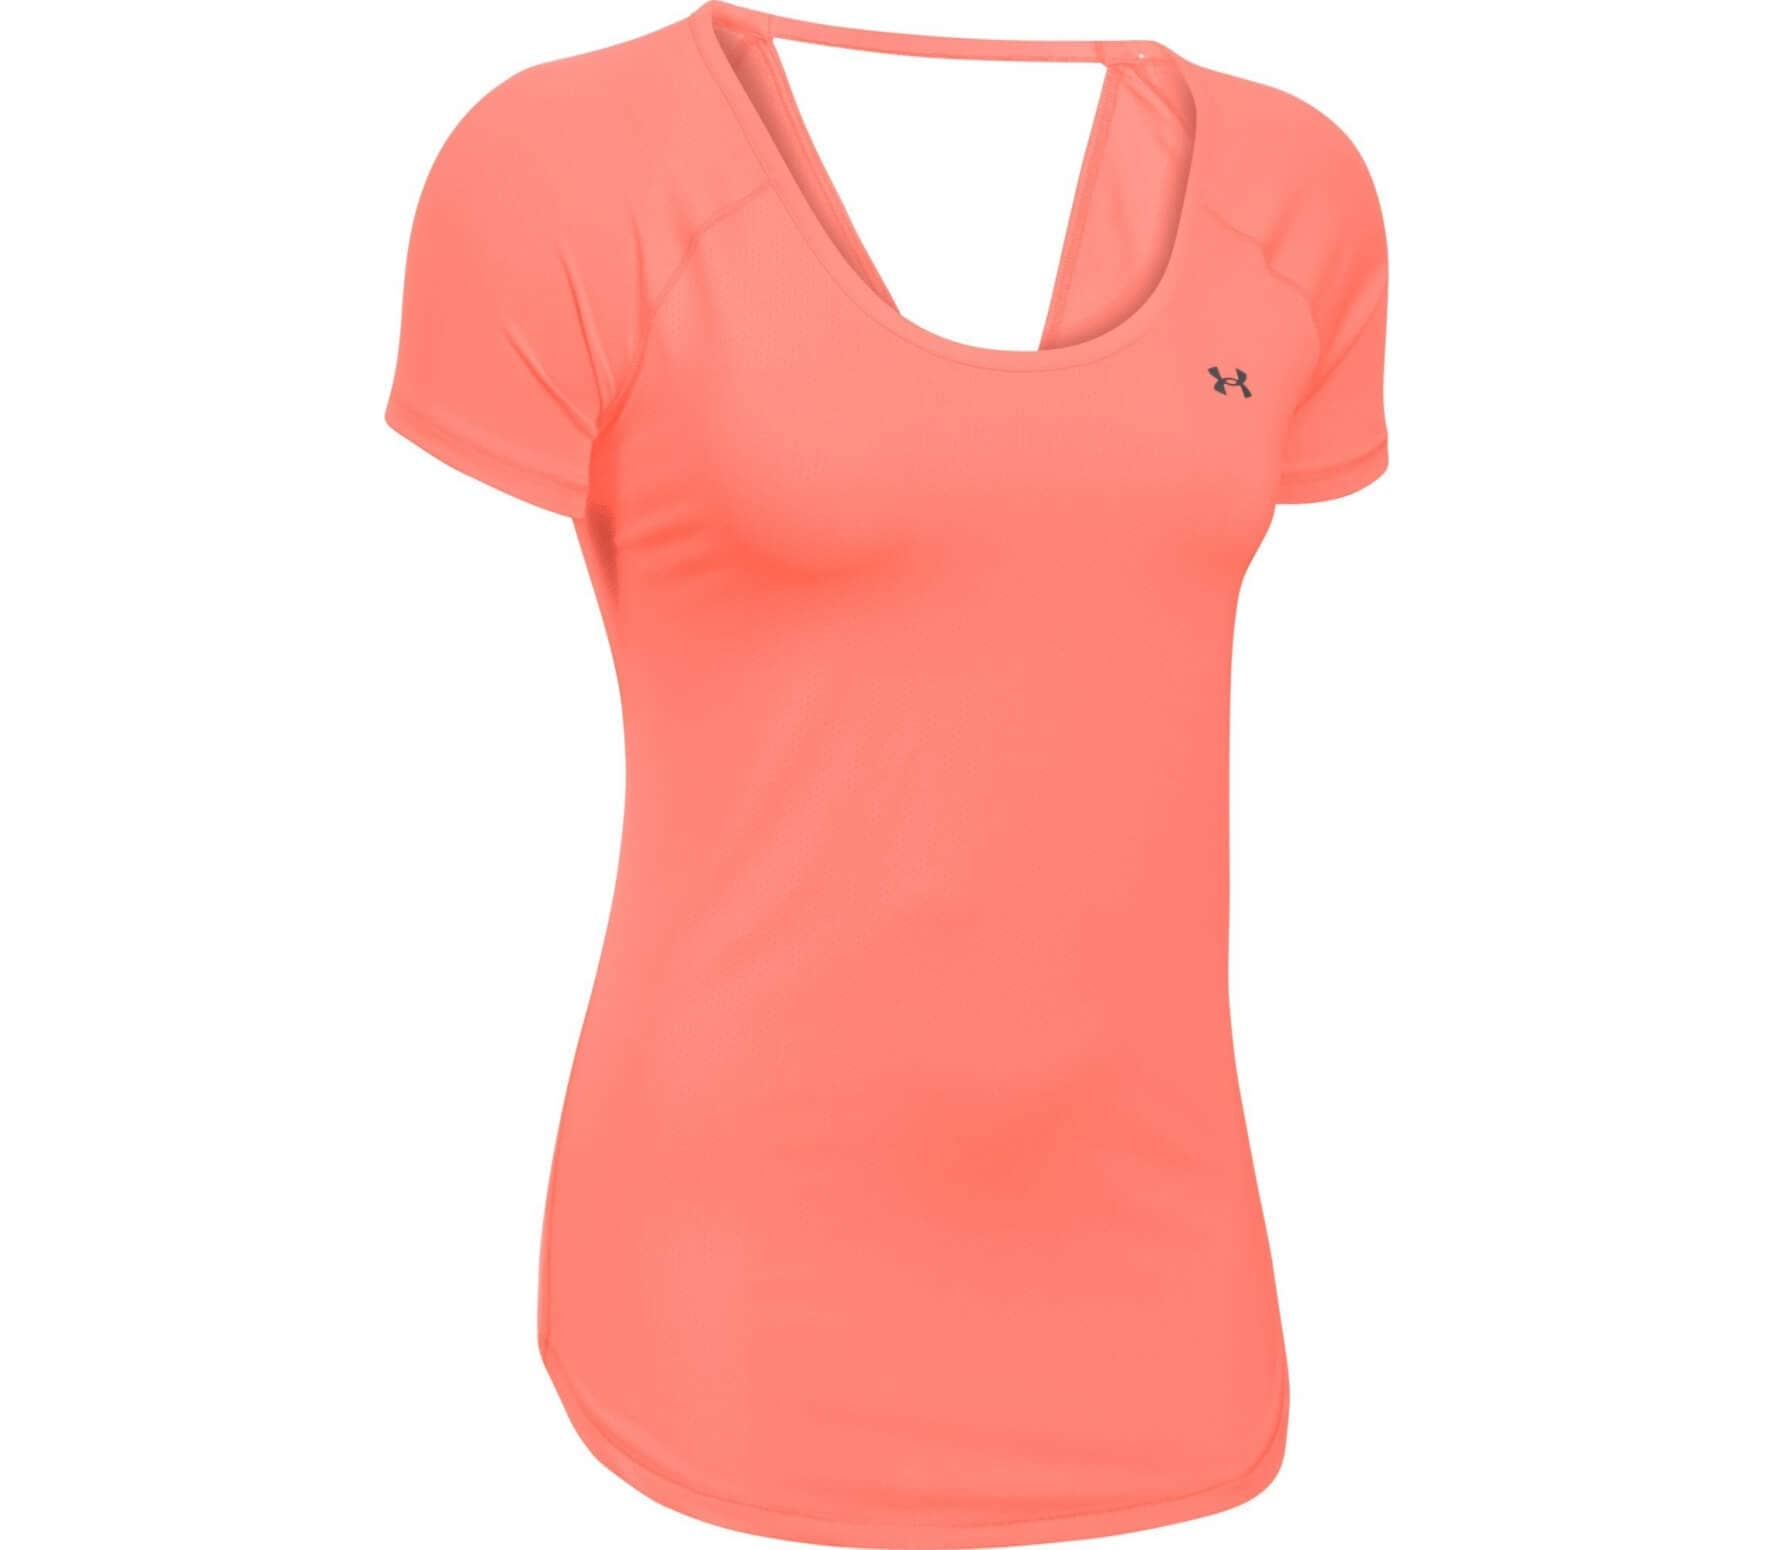 62274197 Under Armour - Heatgear Armour Coolswitch Shortsleeve women's training  t-shirt (orange)